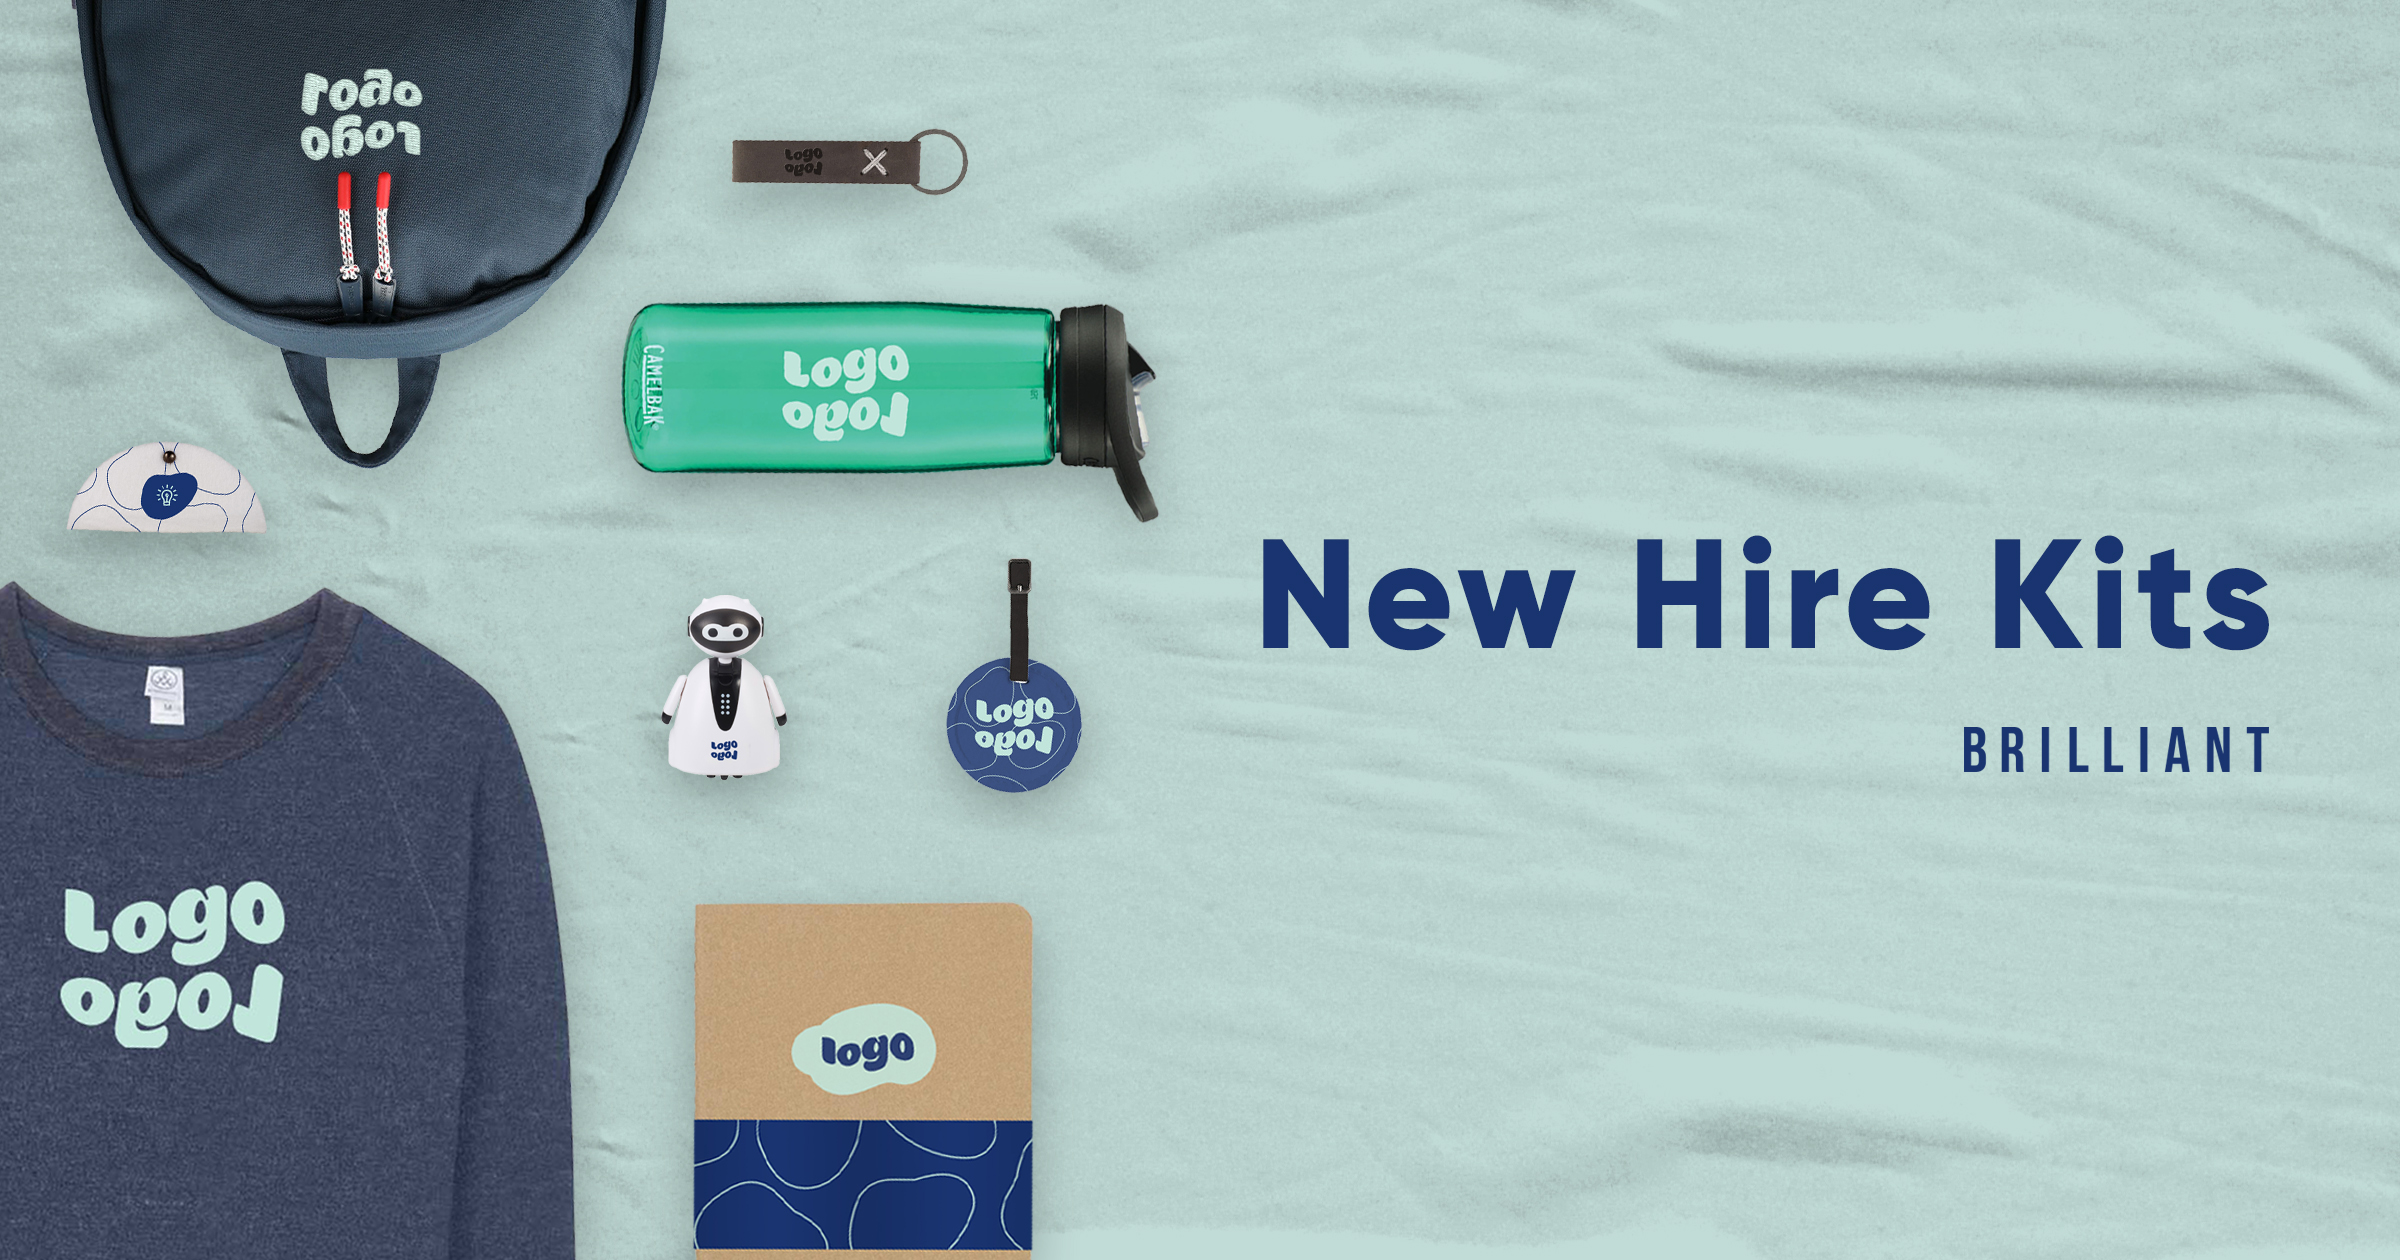 New Hire Kits